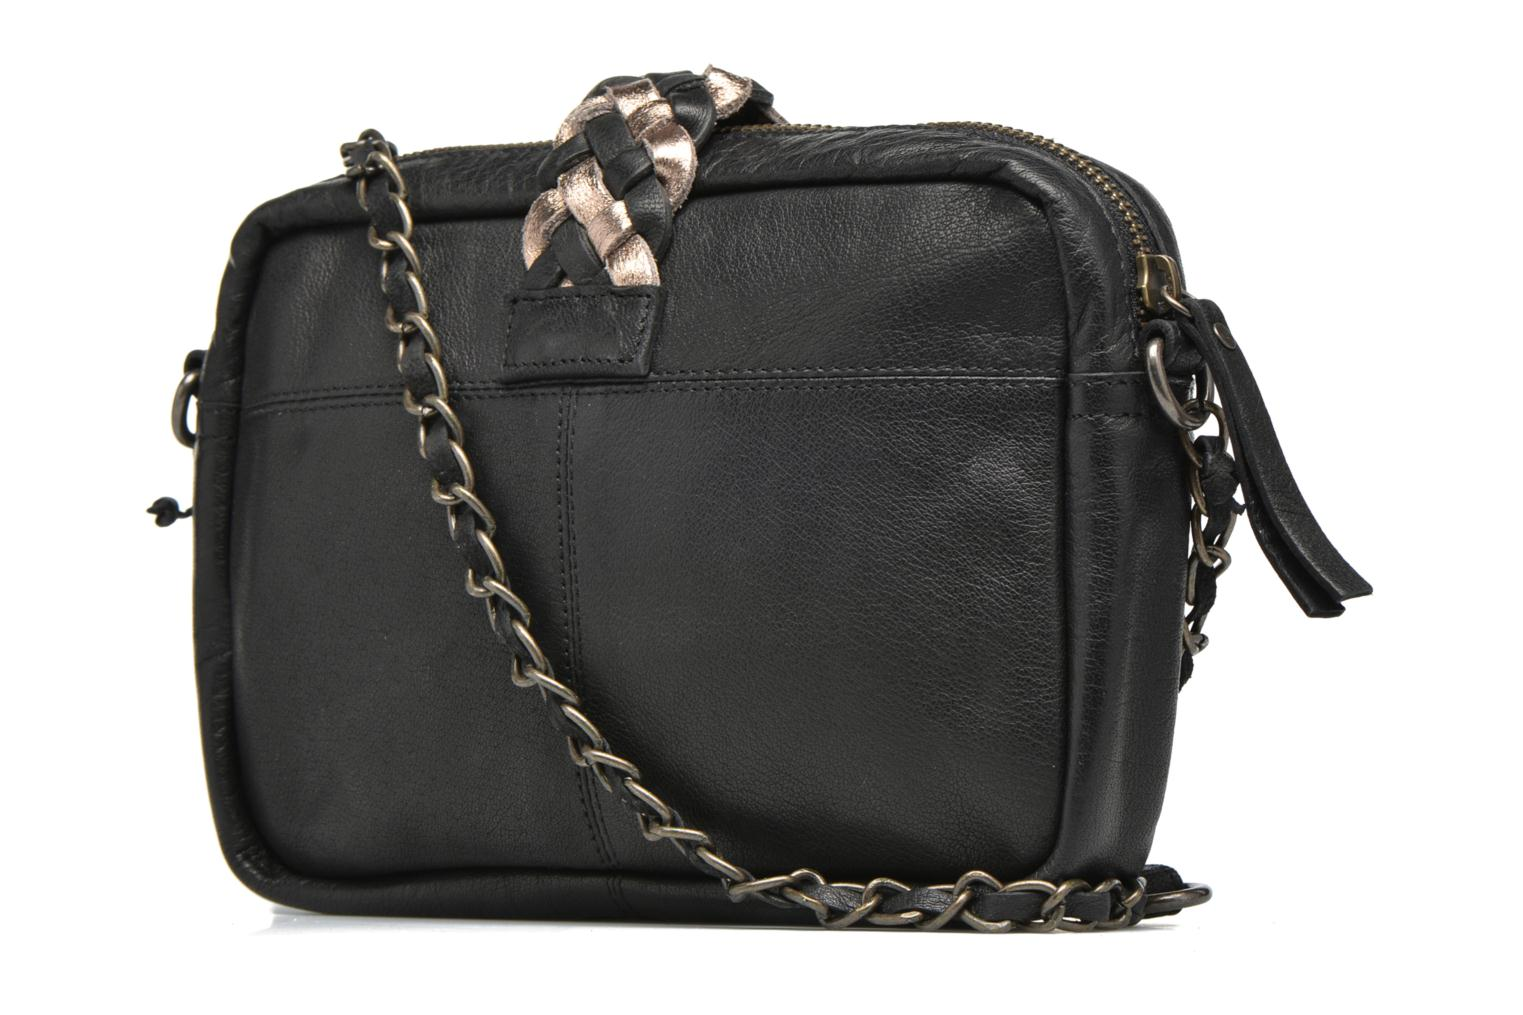 PIVO Leather Crossbody bag Black/gold